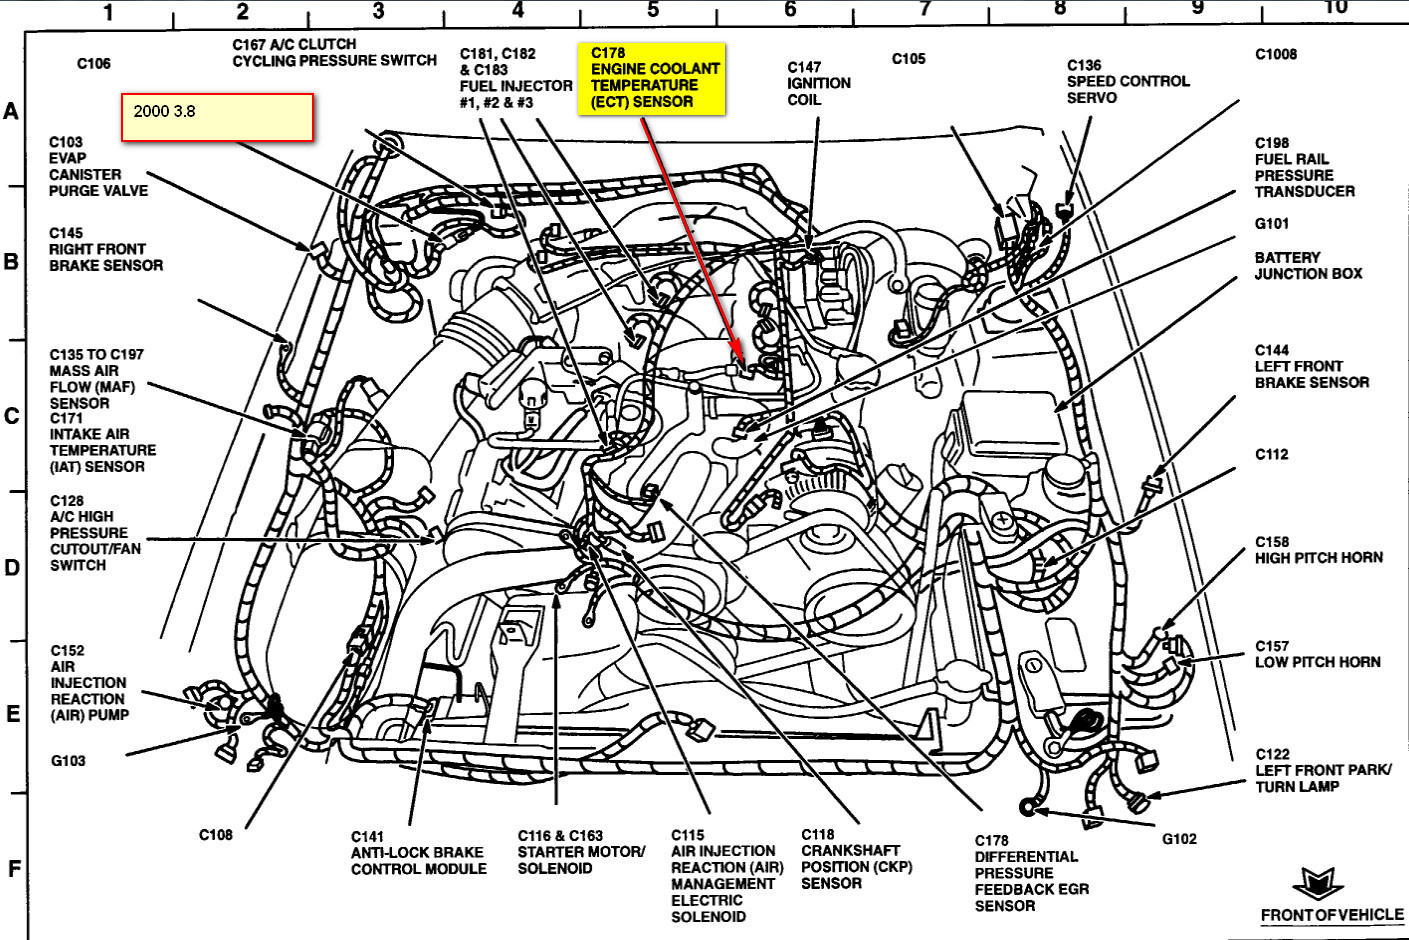 2003 Mustang Engine Diagram Archive Of Automotive Wiring Ford 99 Schematics Rh Thyl Co Uk V6